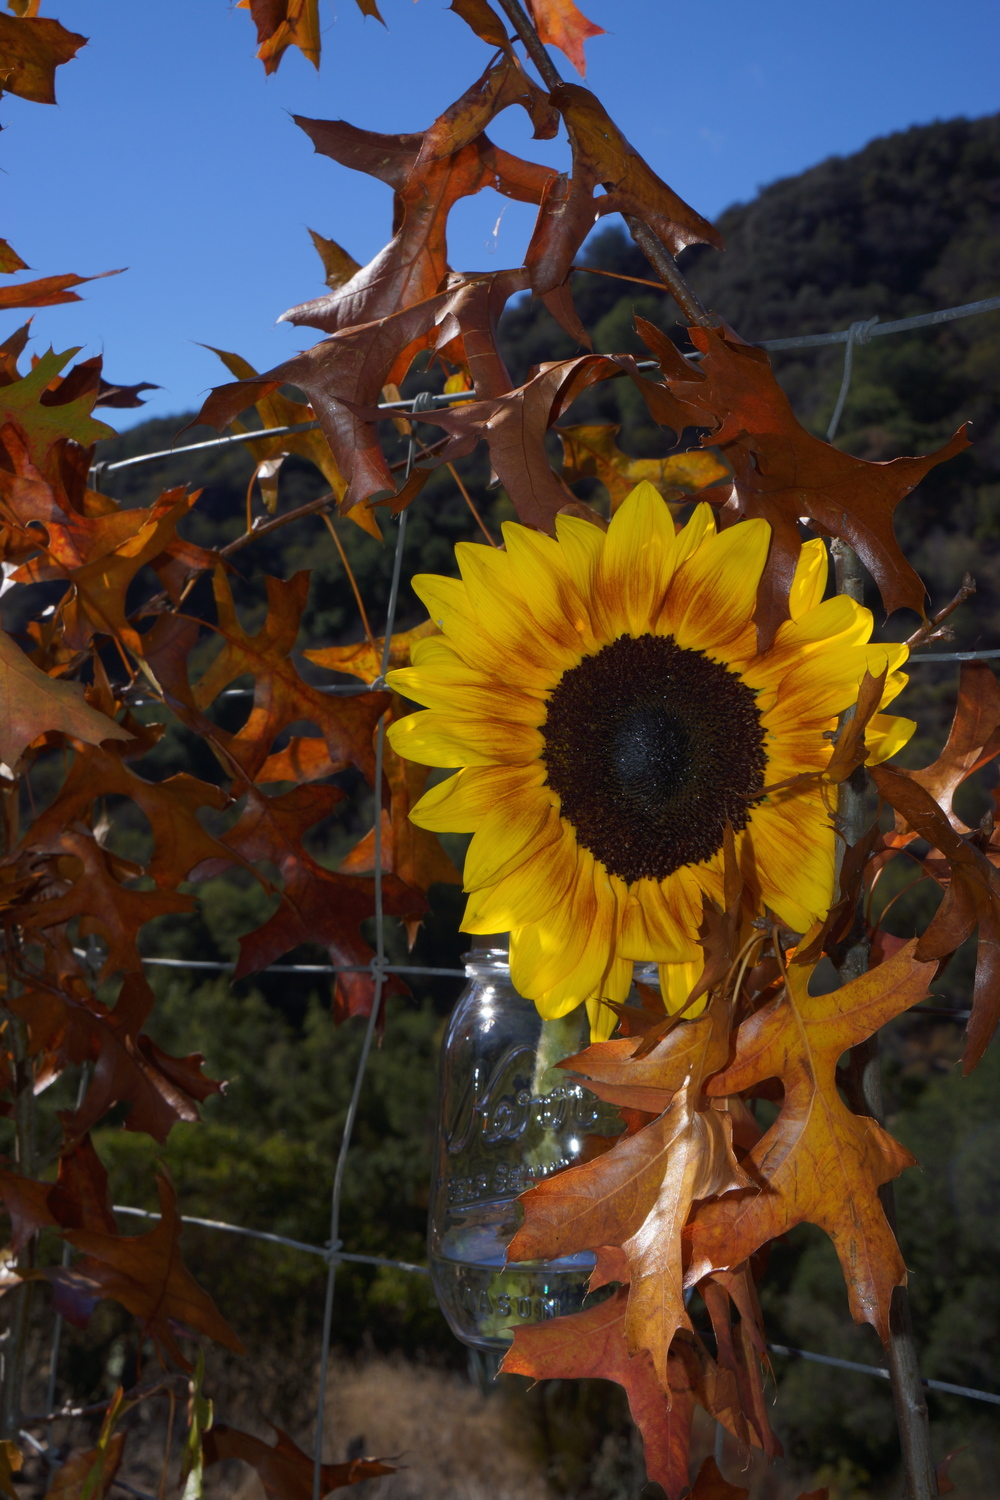 sunflower_fall_leaves.jpg